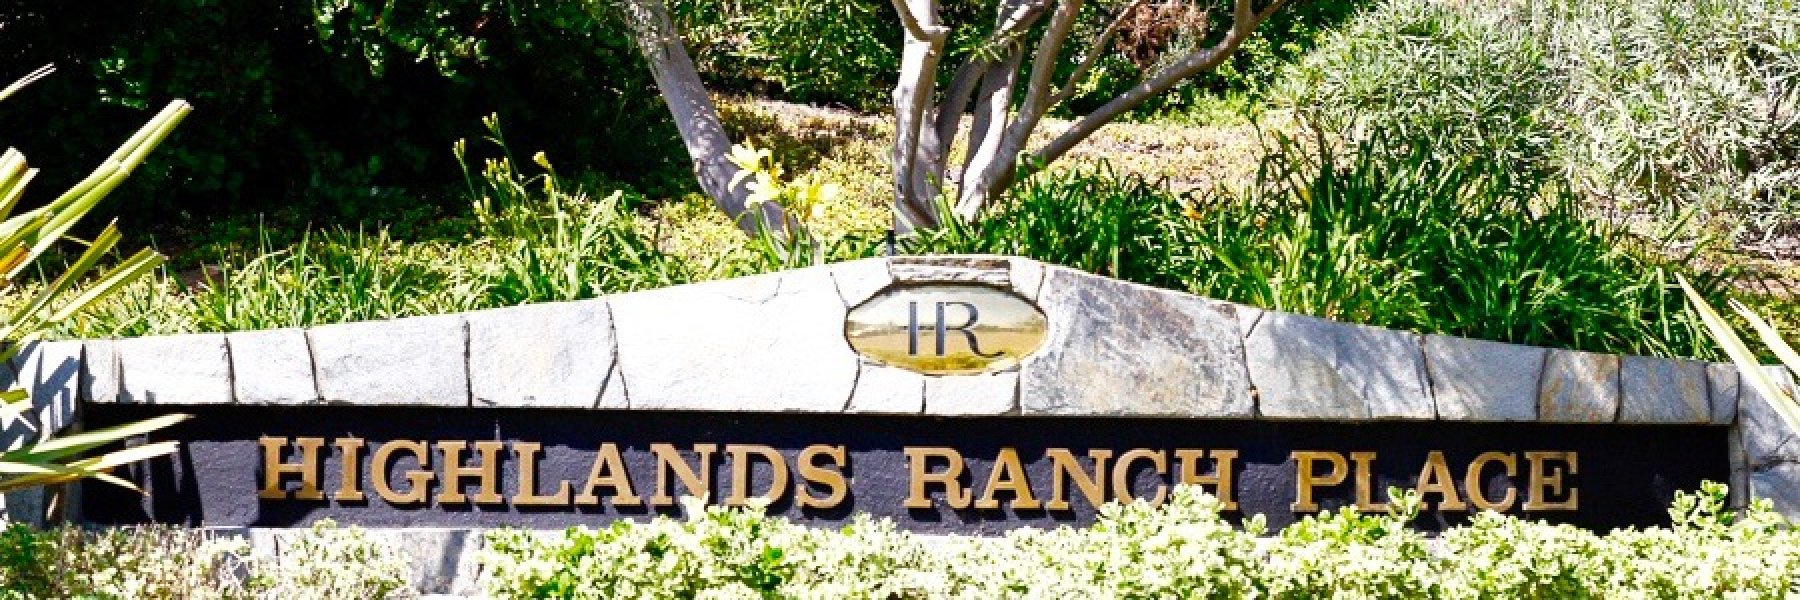 Highlands Ranch is a community of homes in Poway California